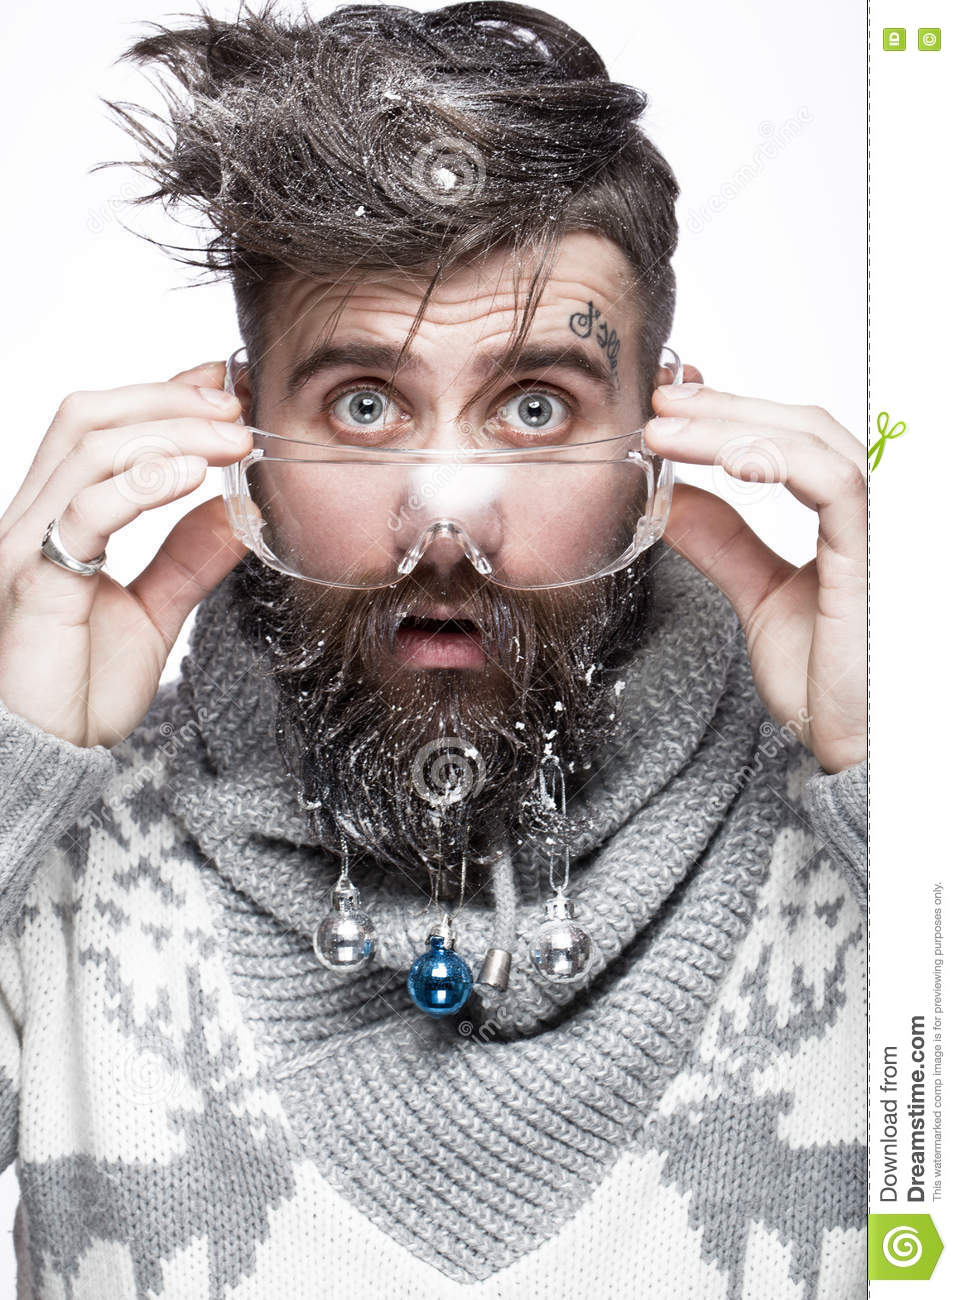 Funny bearded man in a New Year`s image with snow and decorations on his beard. Feast of Christmas.